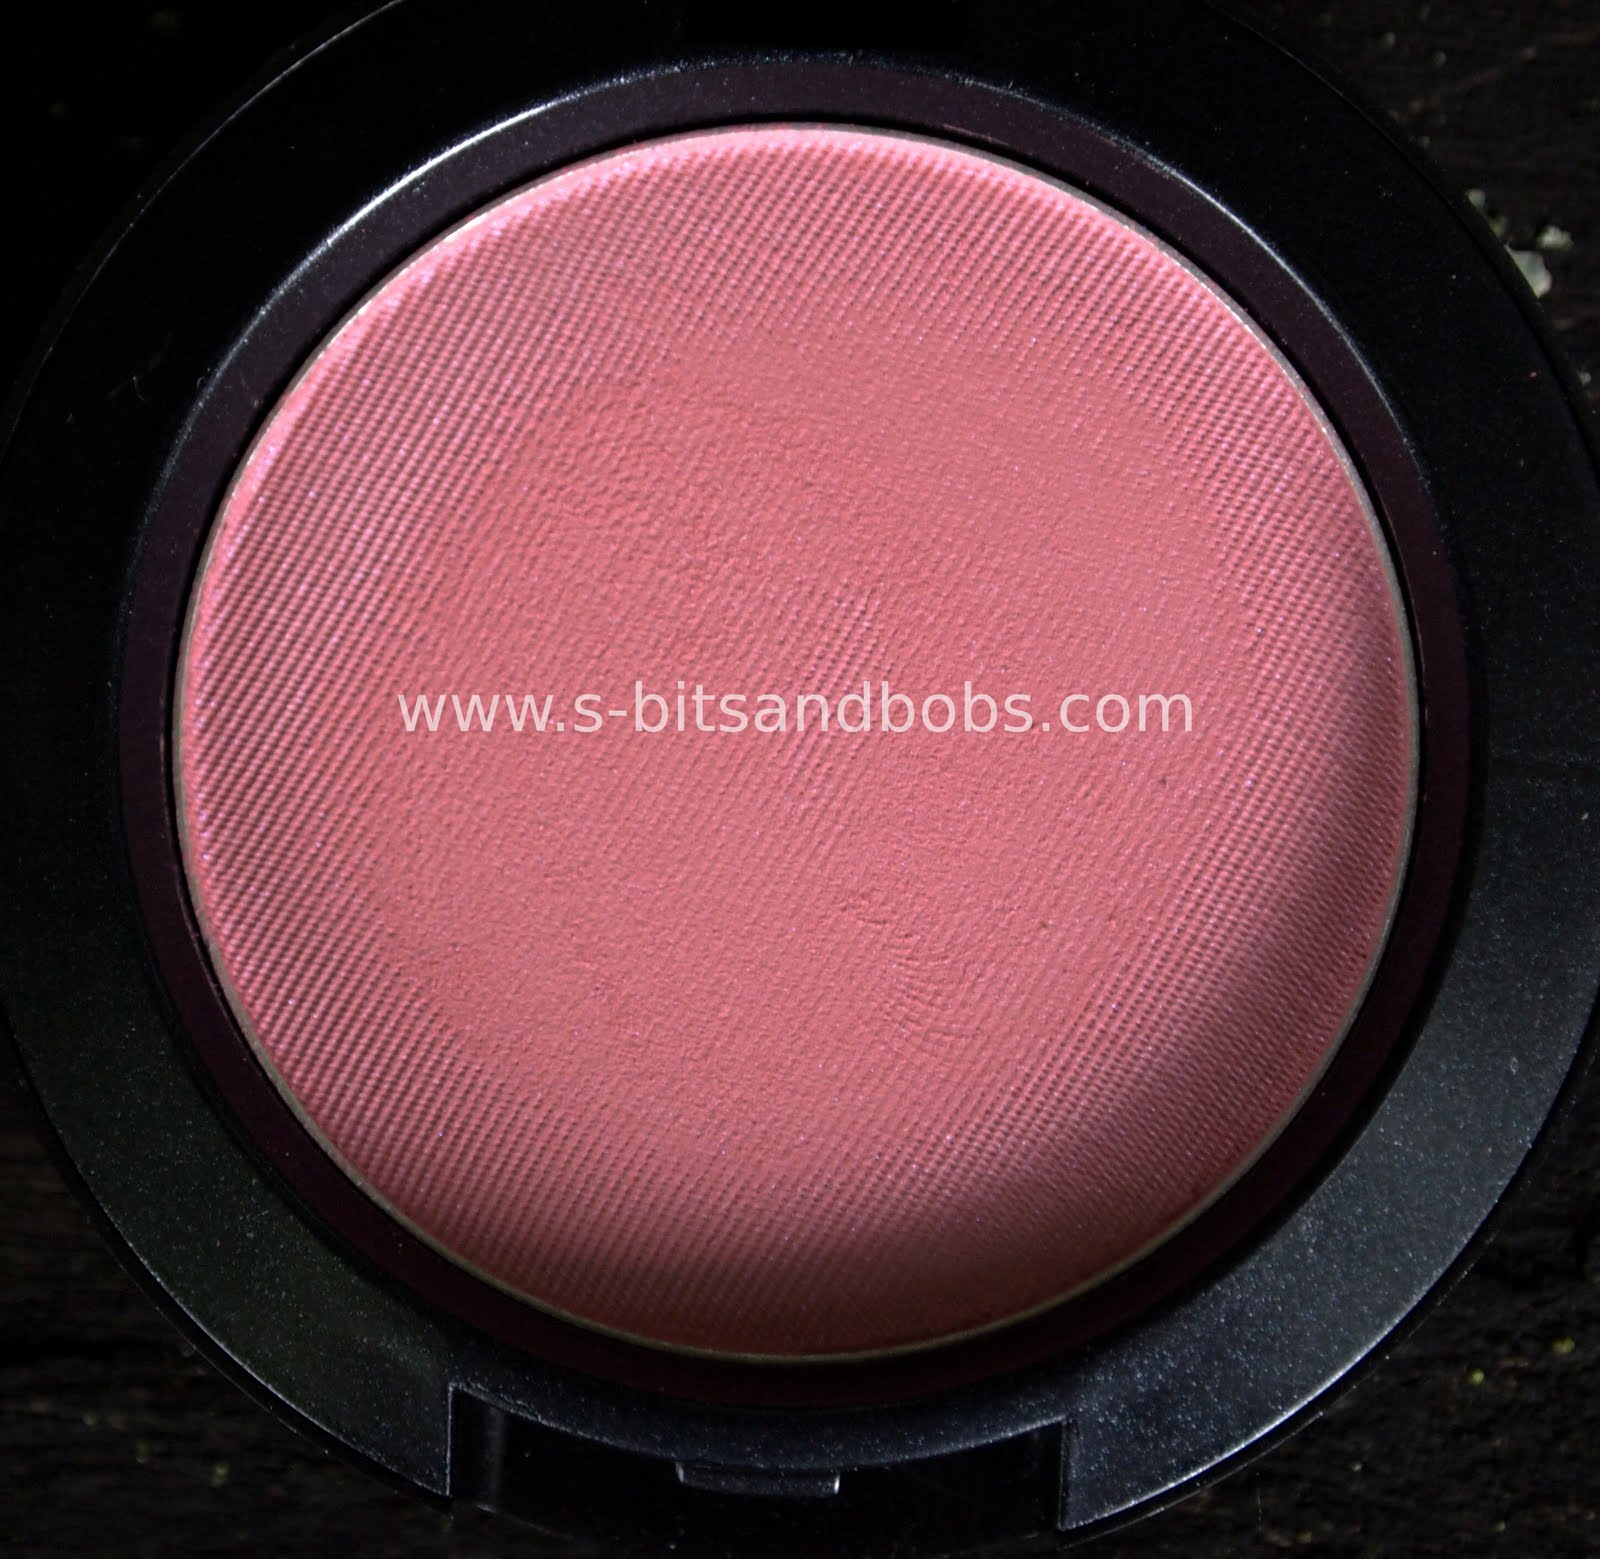 76b9854b My first of the two MAC blushes i purchased a good weekend ago! I wasn't  sure whether to purchase this or not as it had a cool pink tone (I prefer  coral ...